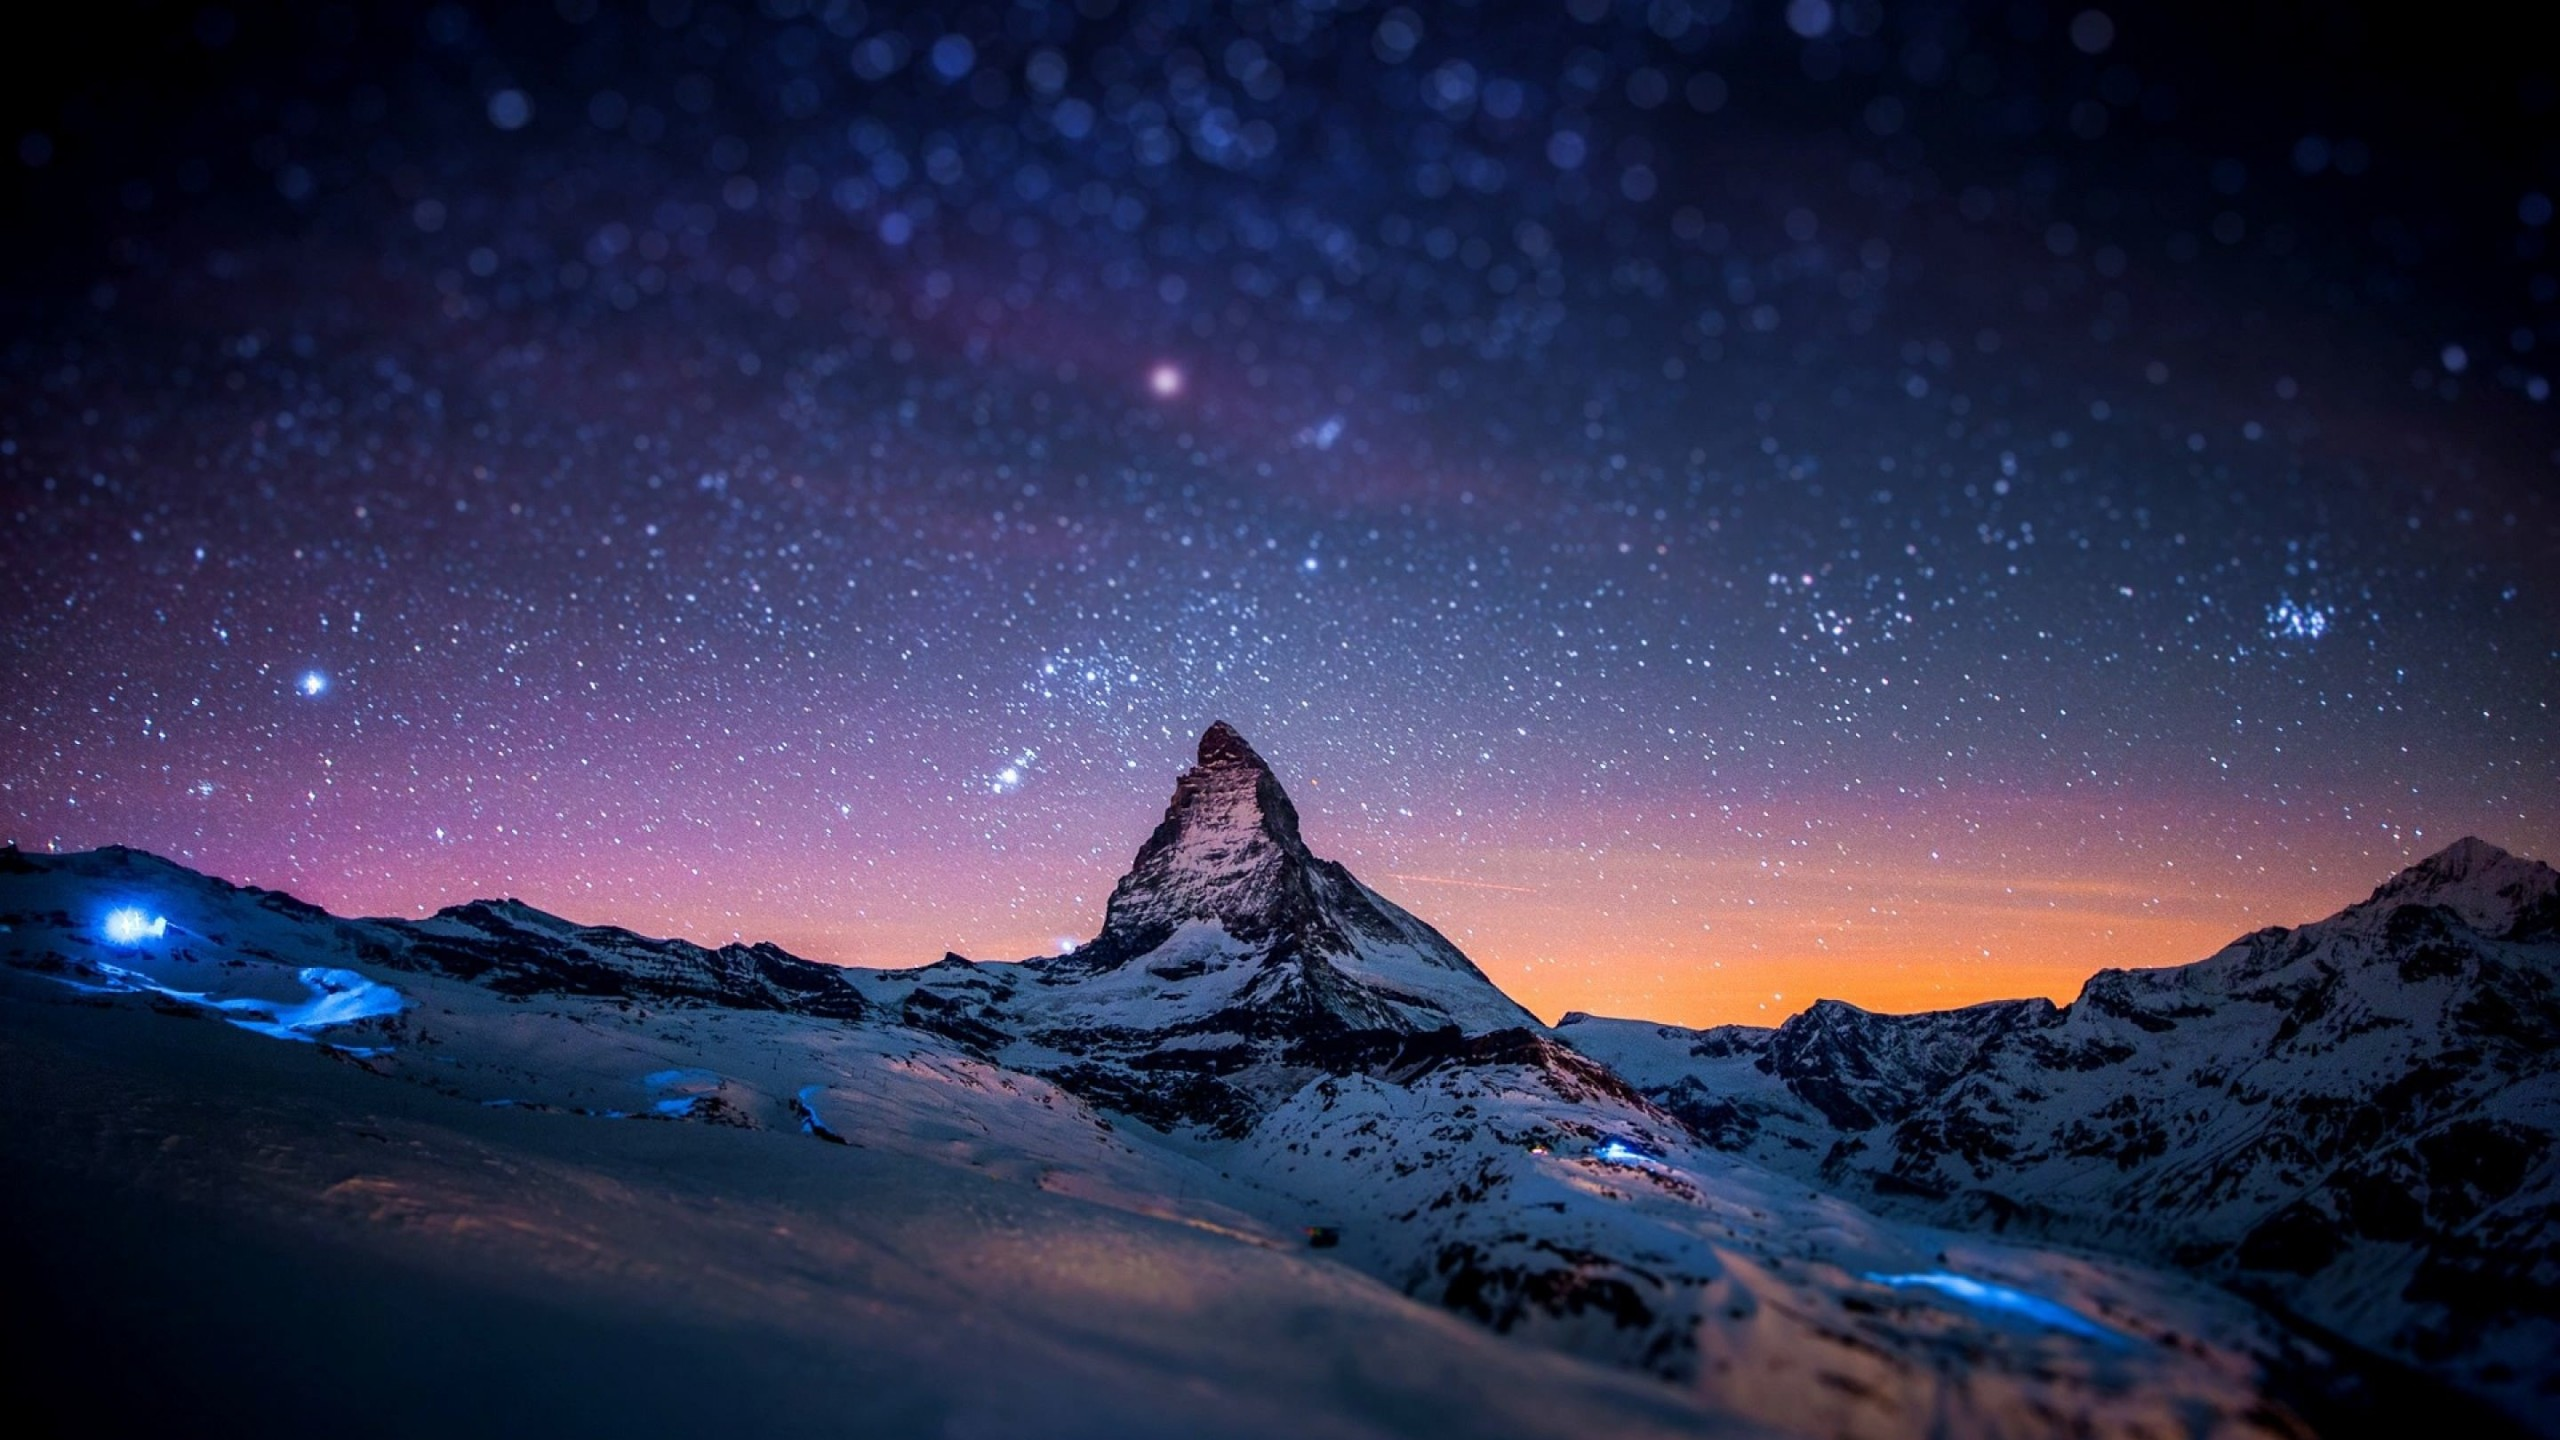 Starry Night Over The Matterhorn Wallpaper for Desktop 2560x1440